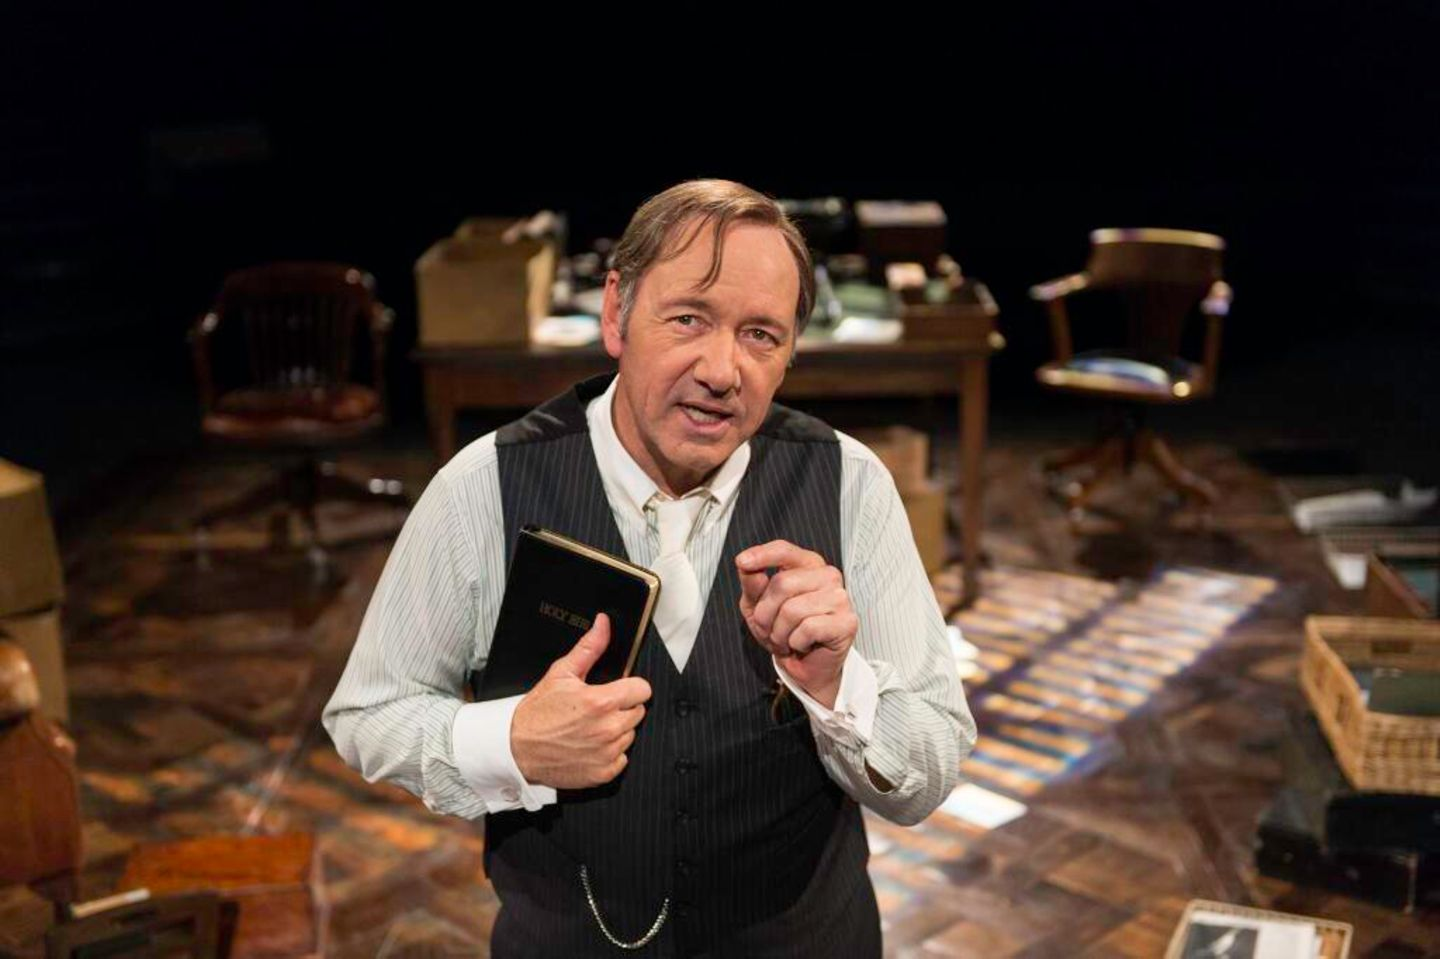 """Kevin Spacey spielt in London im """"The Old Vic Theatre"""" die Rolle des """"Clarence Darrow""""."""